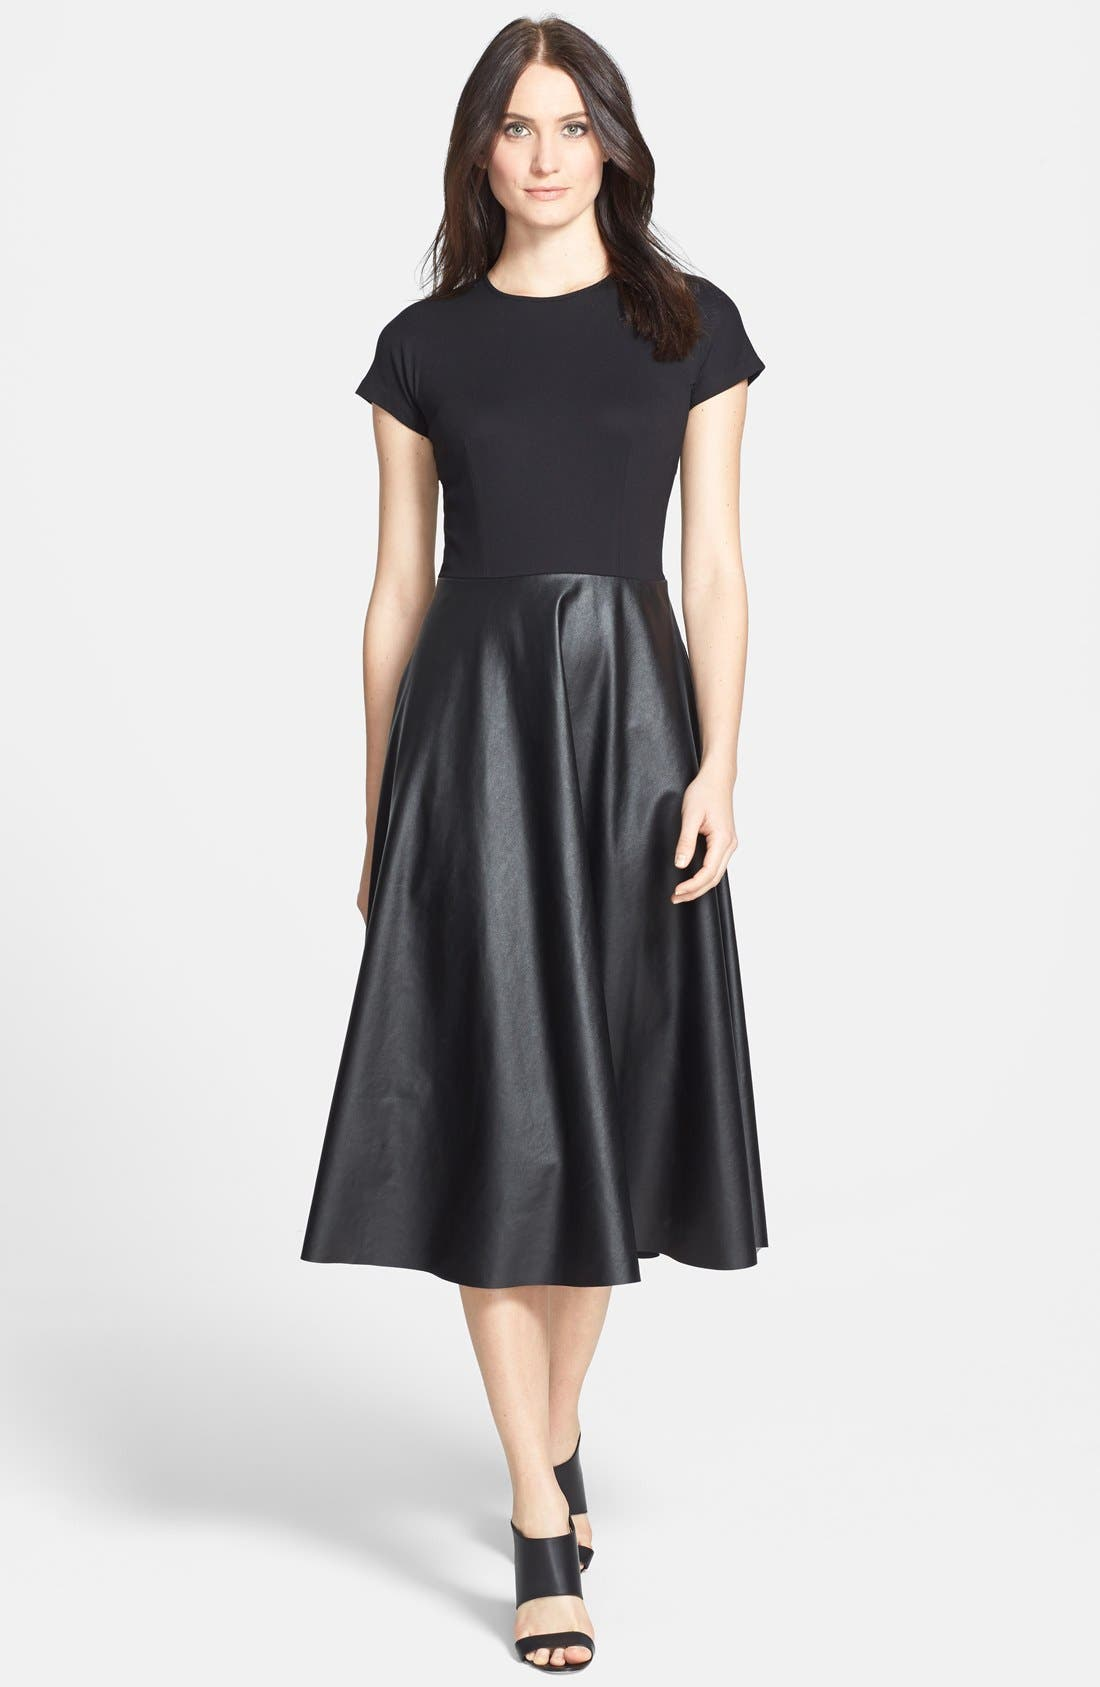 Alternate Image 1 Selected - Lafayette 148 New York 'Mirna - Neo Tech' Dress